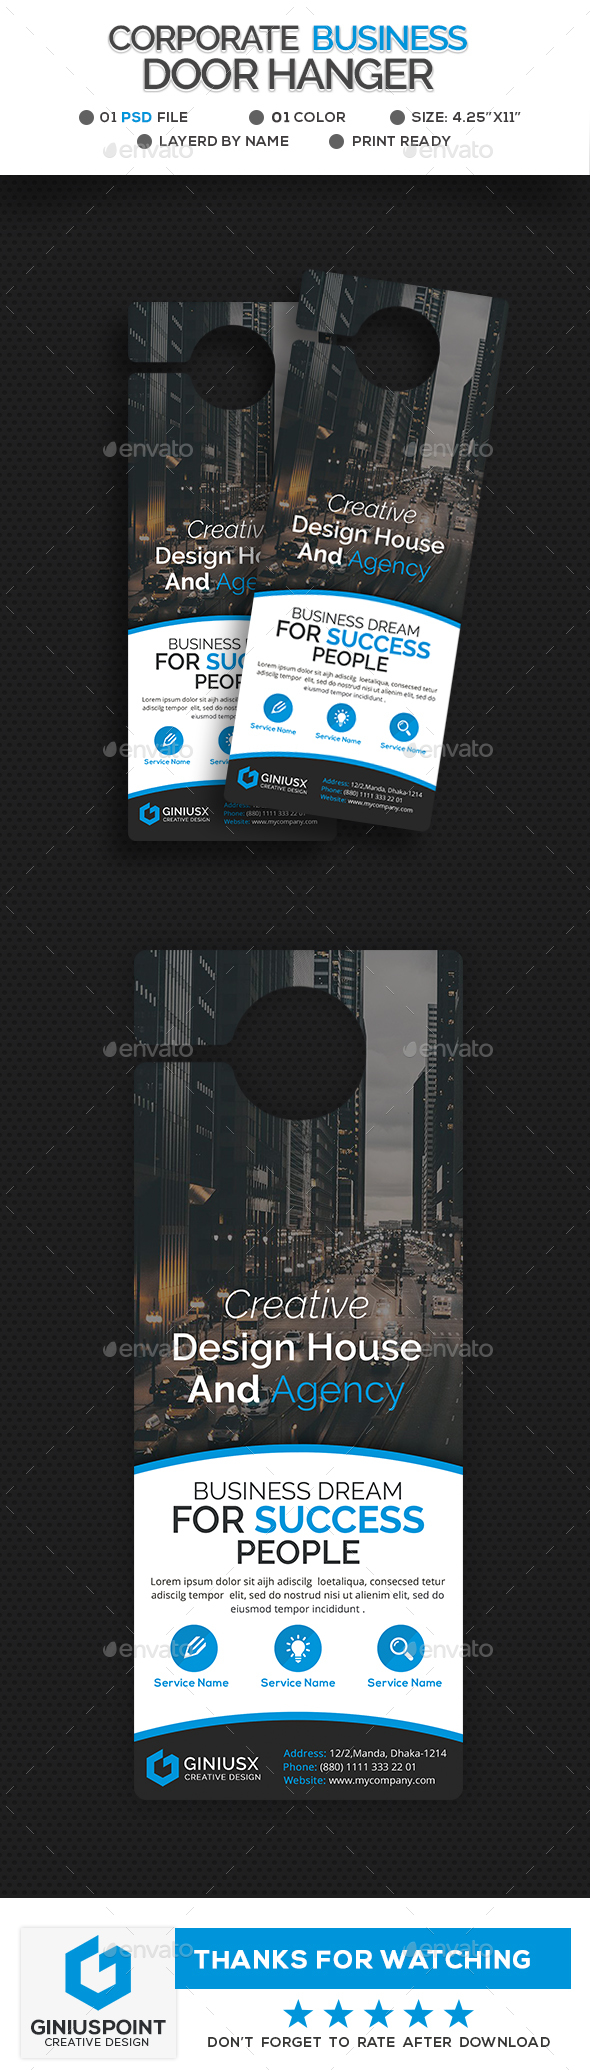 GraphicRiver Corporate Business Door Hanger 20941371